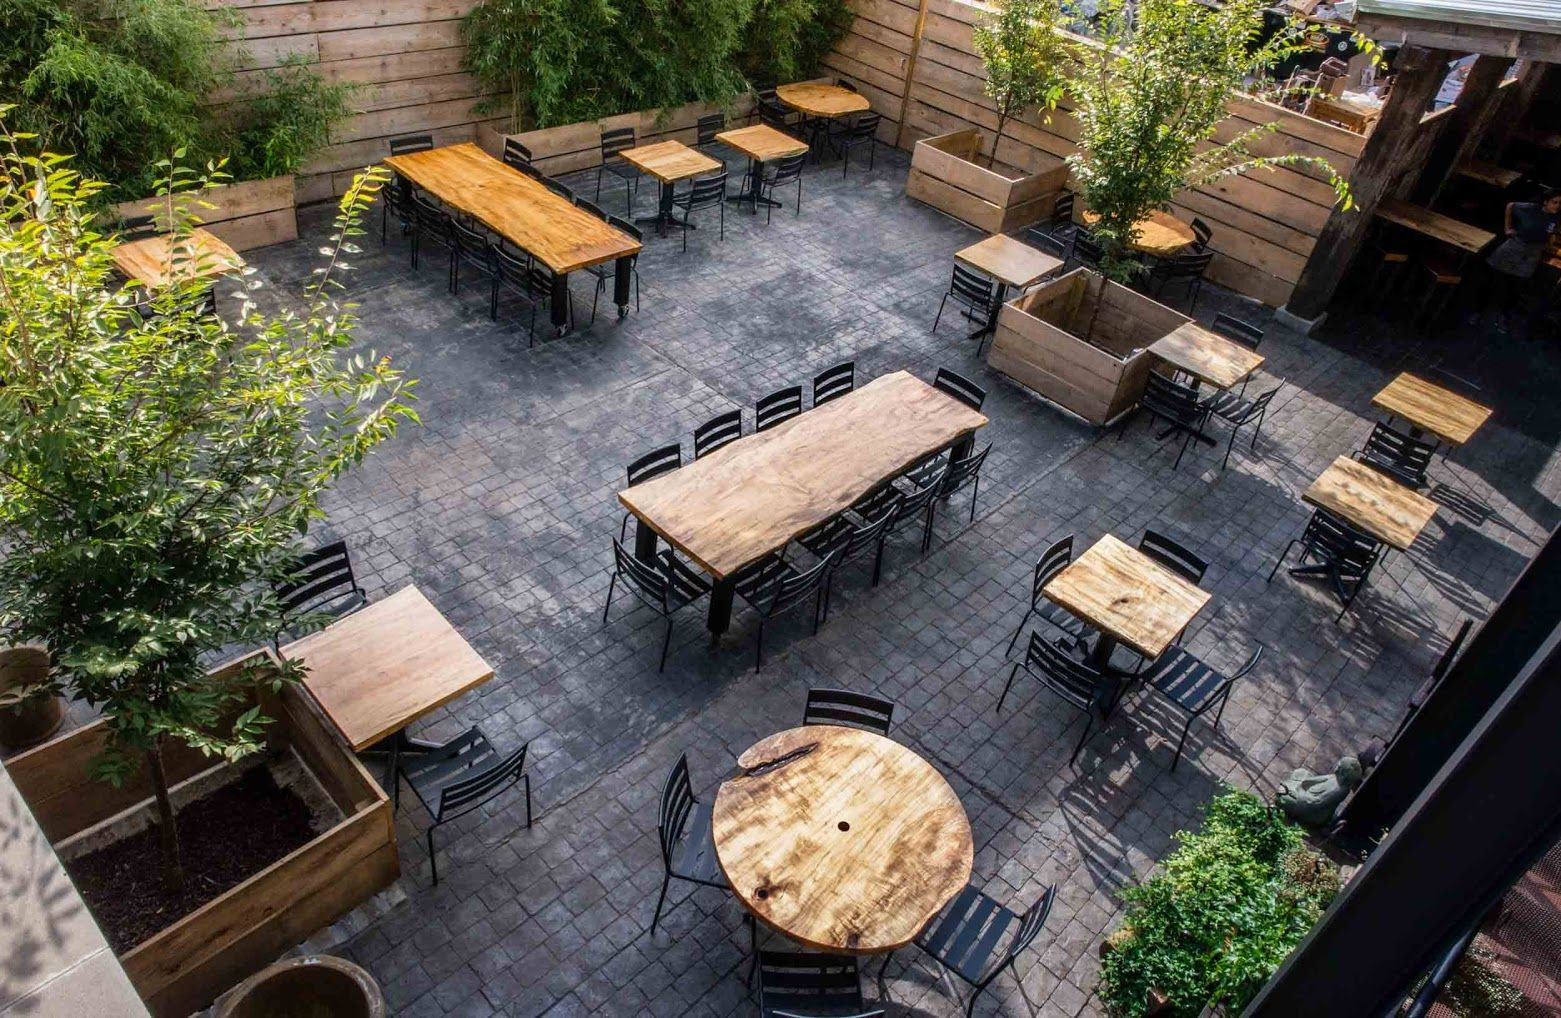 Photo Gallery Front Street Cafe Outdoor Restaurant Patio Outdoor Cafe Restaurant Patio